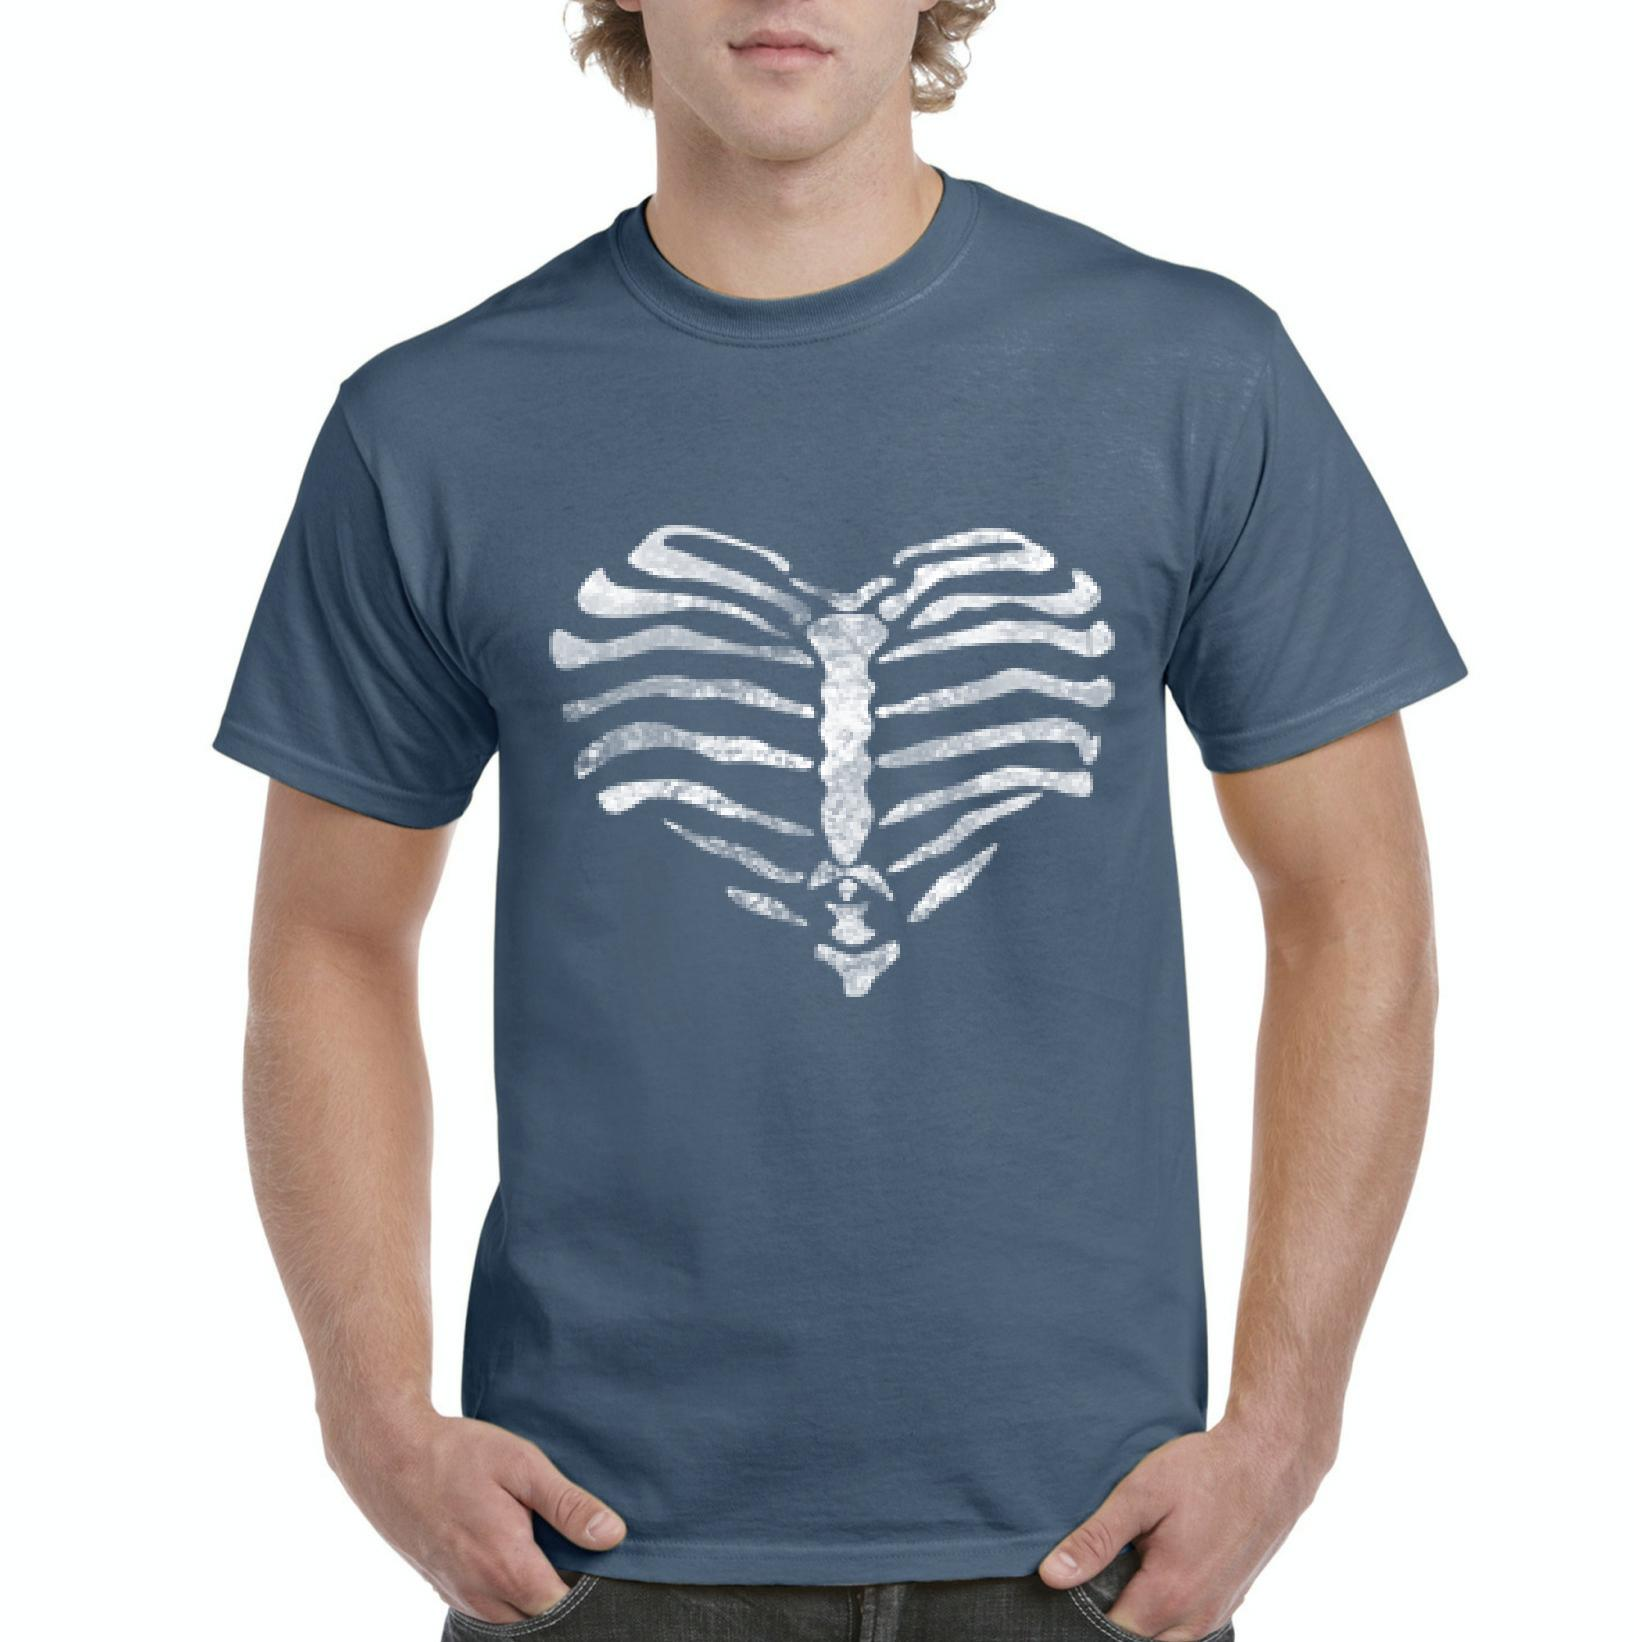 J_H_I Heart Made of Ribs Halloween Party Costume Match with Masks Humor Gift Mens Shirts